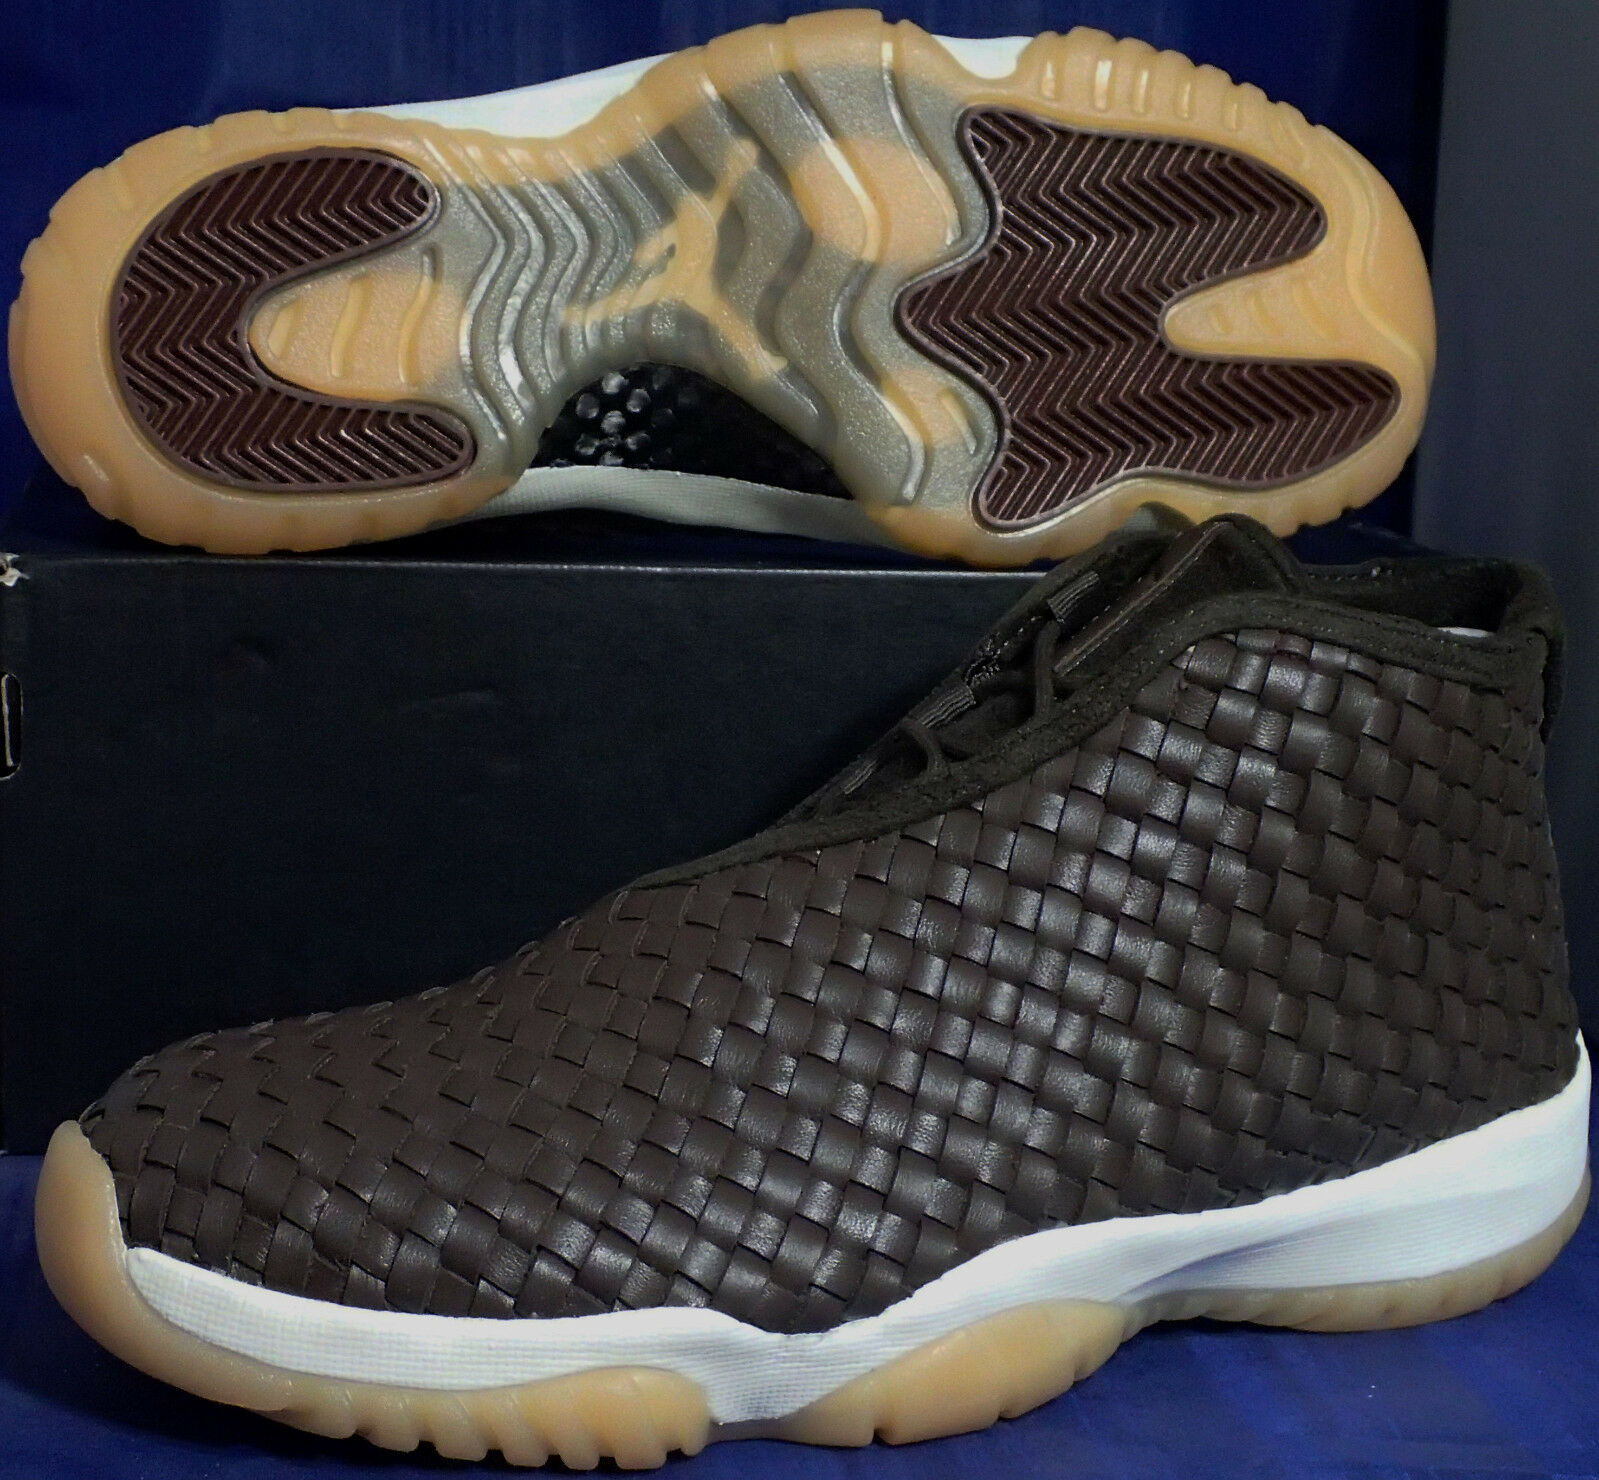 2985192e683b Nike Nike Nike Air Jordan Future Premium Dark Chocolate Gum Yellow SZ 12 (  652141-